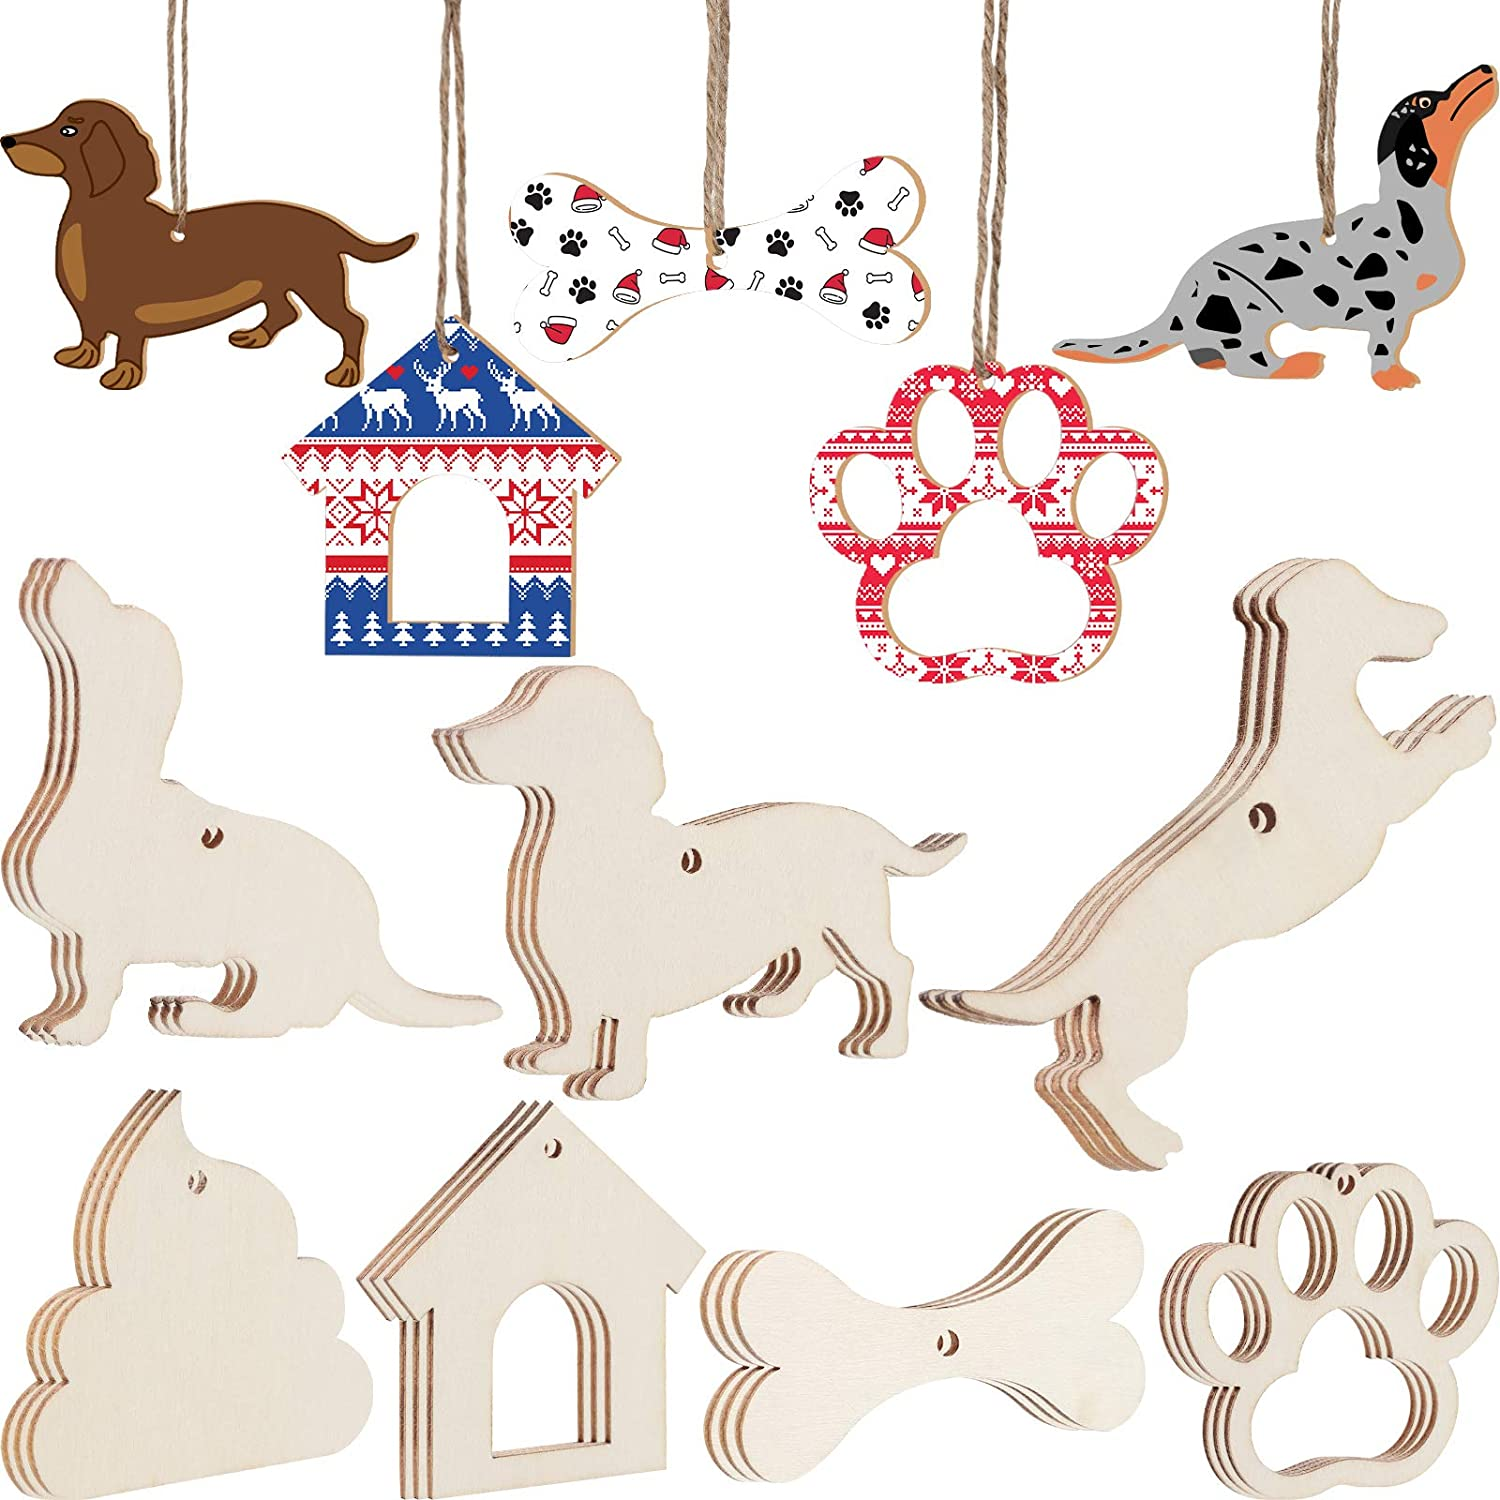 21 Pieces Wooden Christmas Ornament Dog Unfinished Wood Cutouts for Crafts with Rope for Christmas Tree Dog Birthday Party Kids Home Decor Ornament DIY Craft Art Project 7 Styles